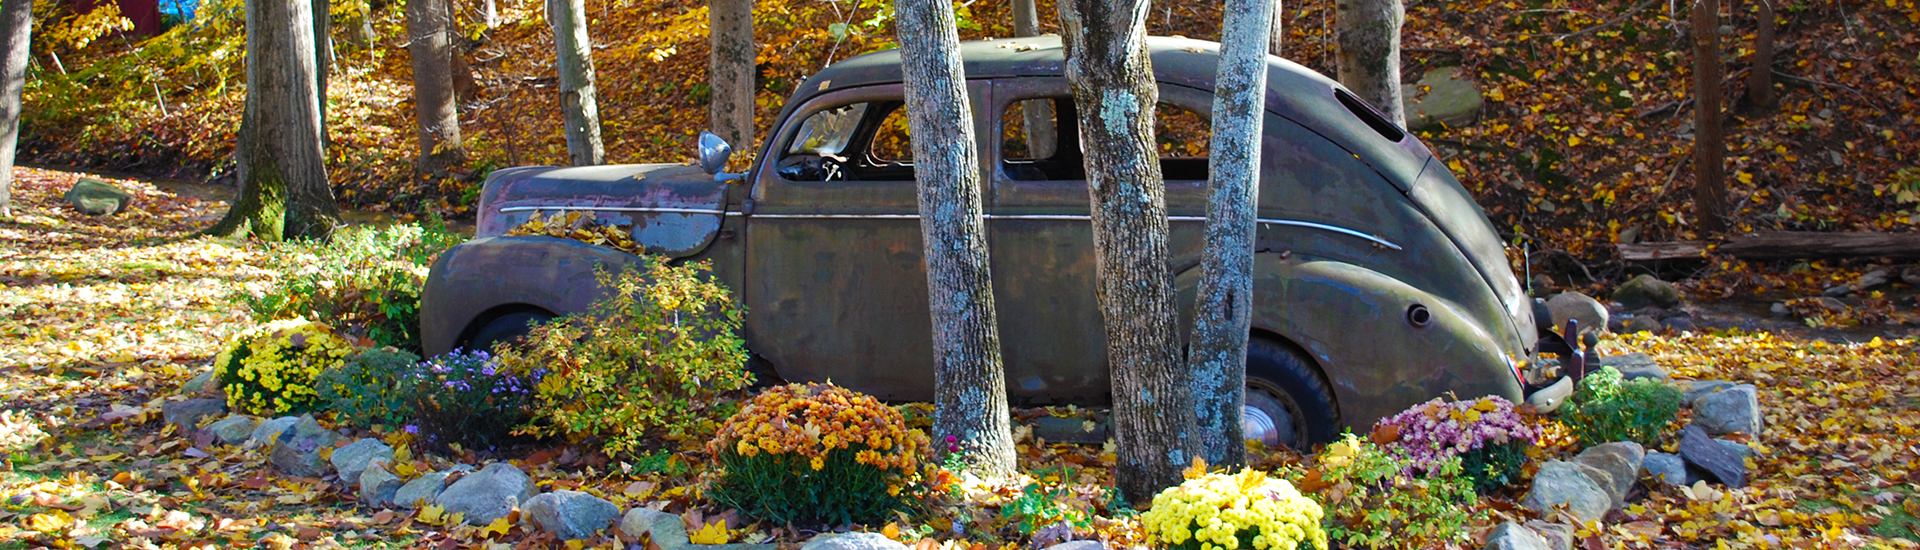 An old rusty car sitting in a flower garden, strewn with autumn leaves.